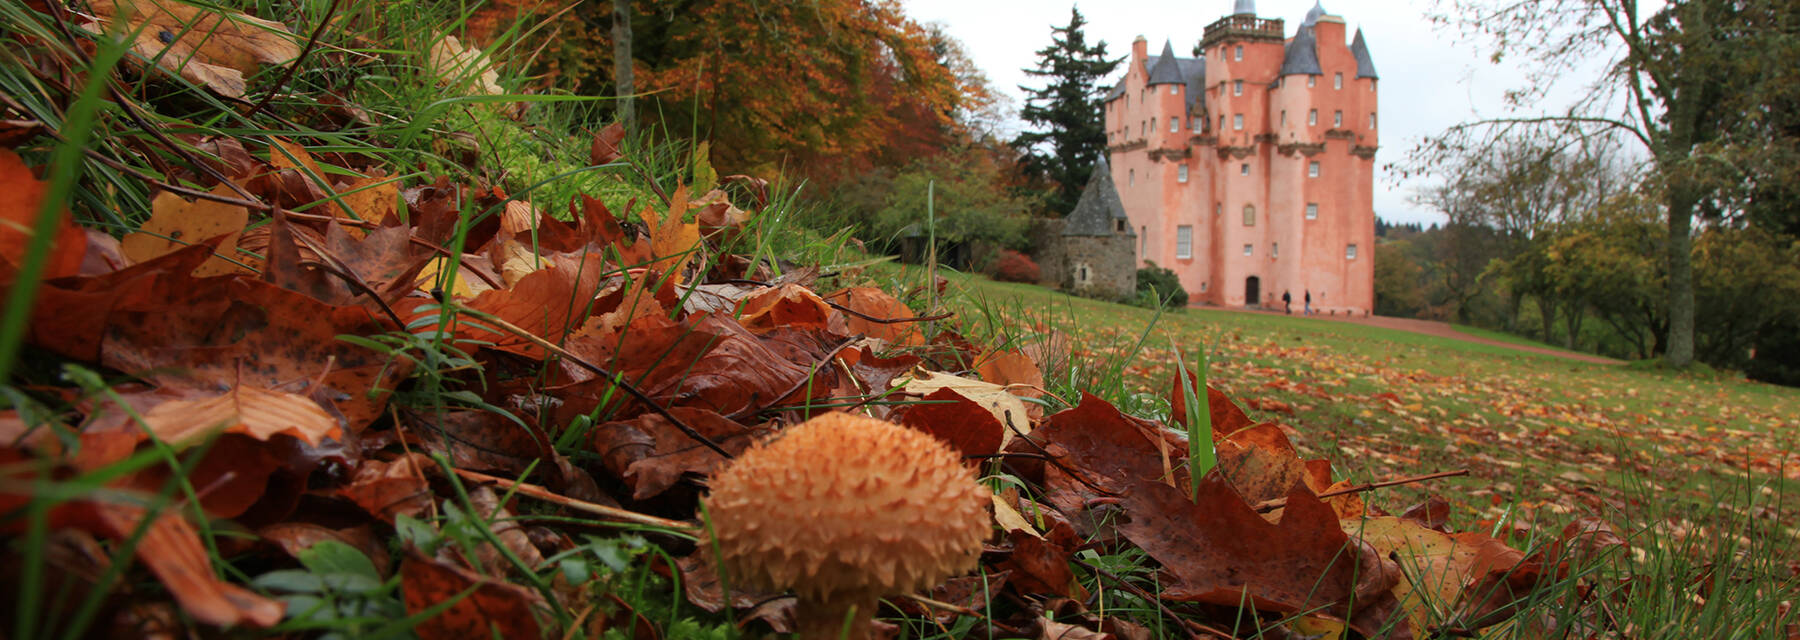 Craigievar Castle in autumn